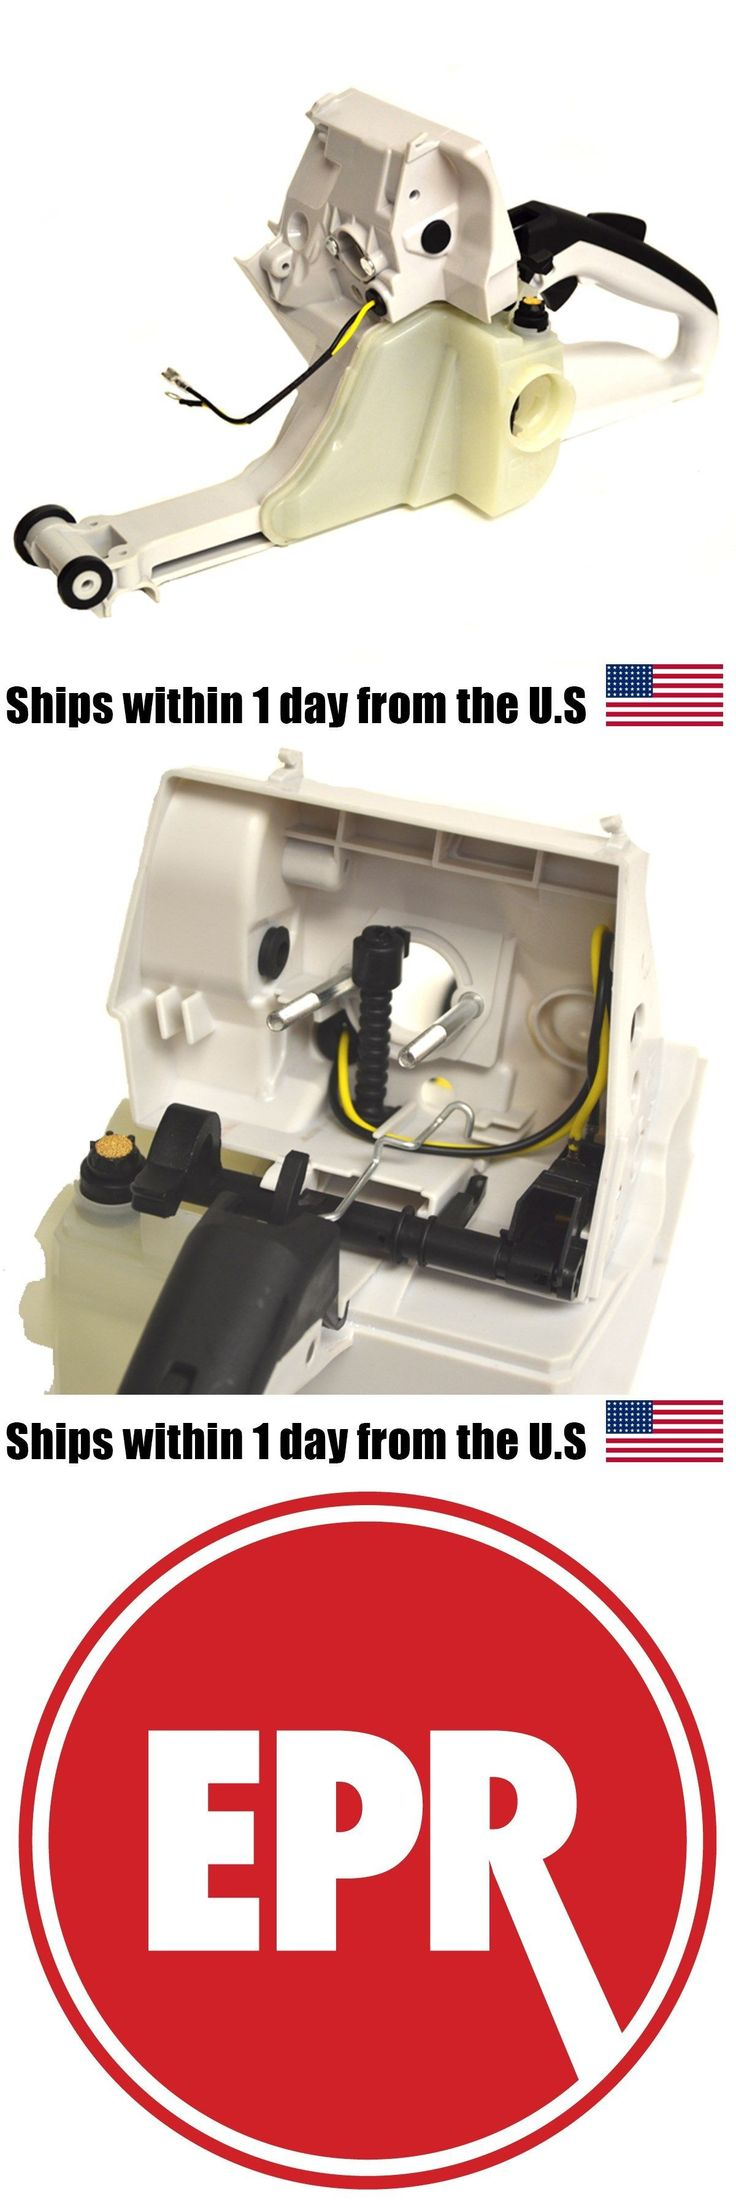 Chainsaw Parts and Accs 85915: Rear Handle Gas Fuel Tank Housing For Stihl 044 Ms440 Chainsaw 1128 350 0832 -> BUY IT NOW ONLY: $56.74 on eBay!